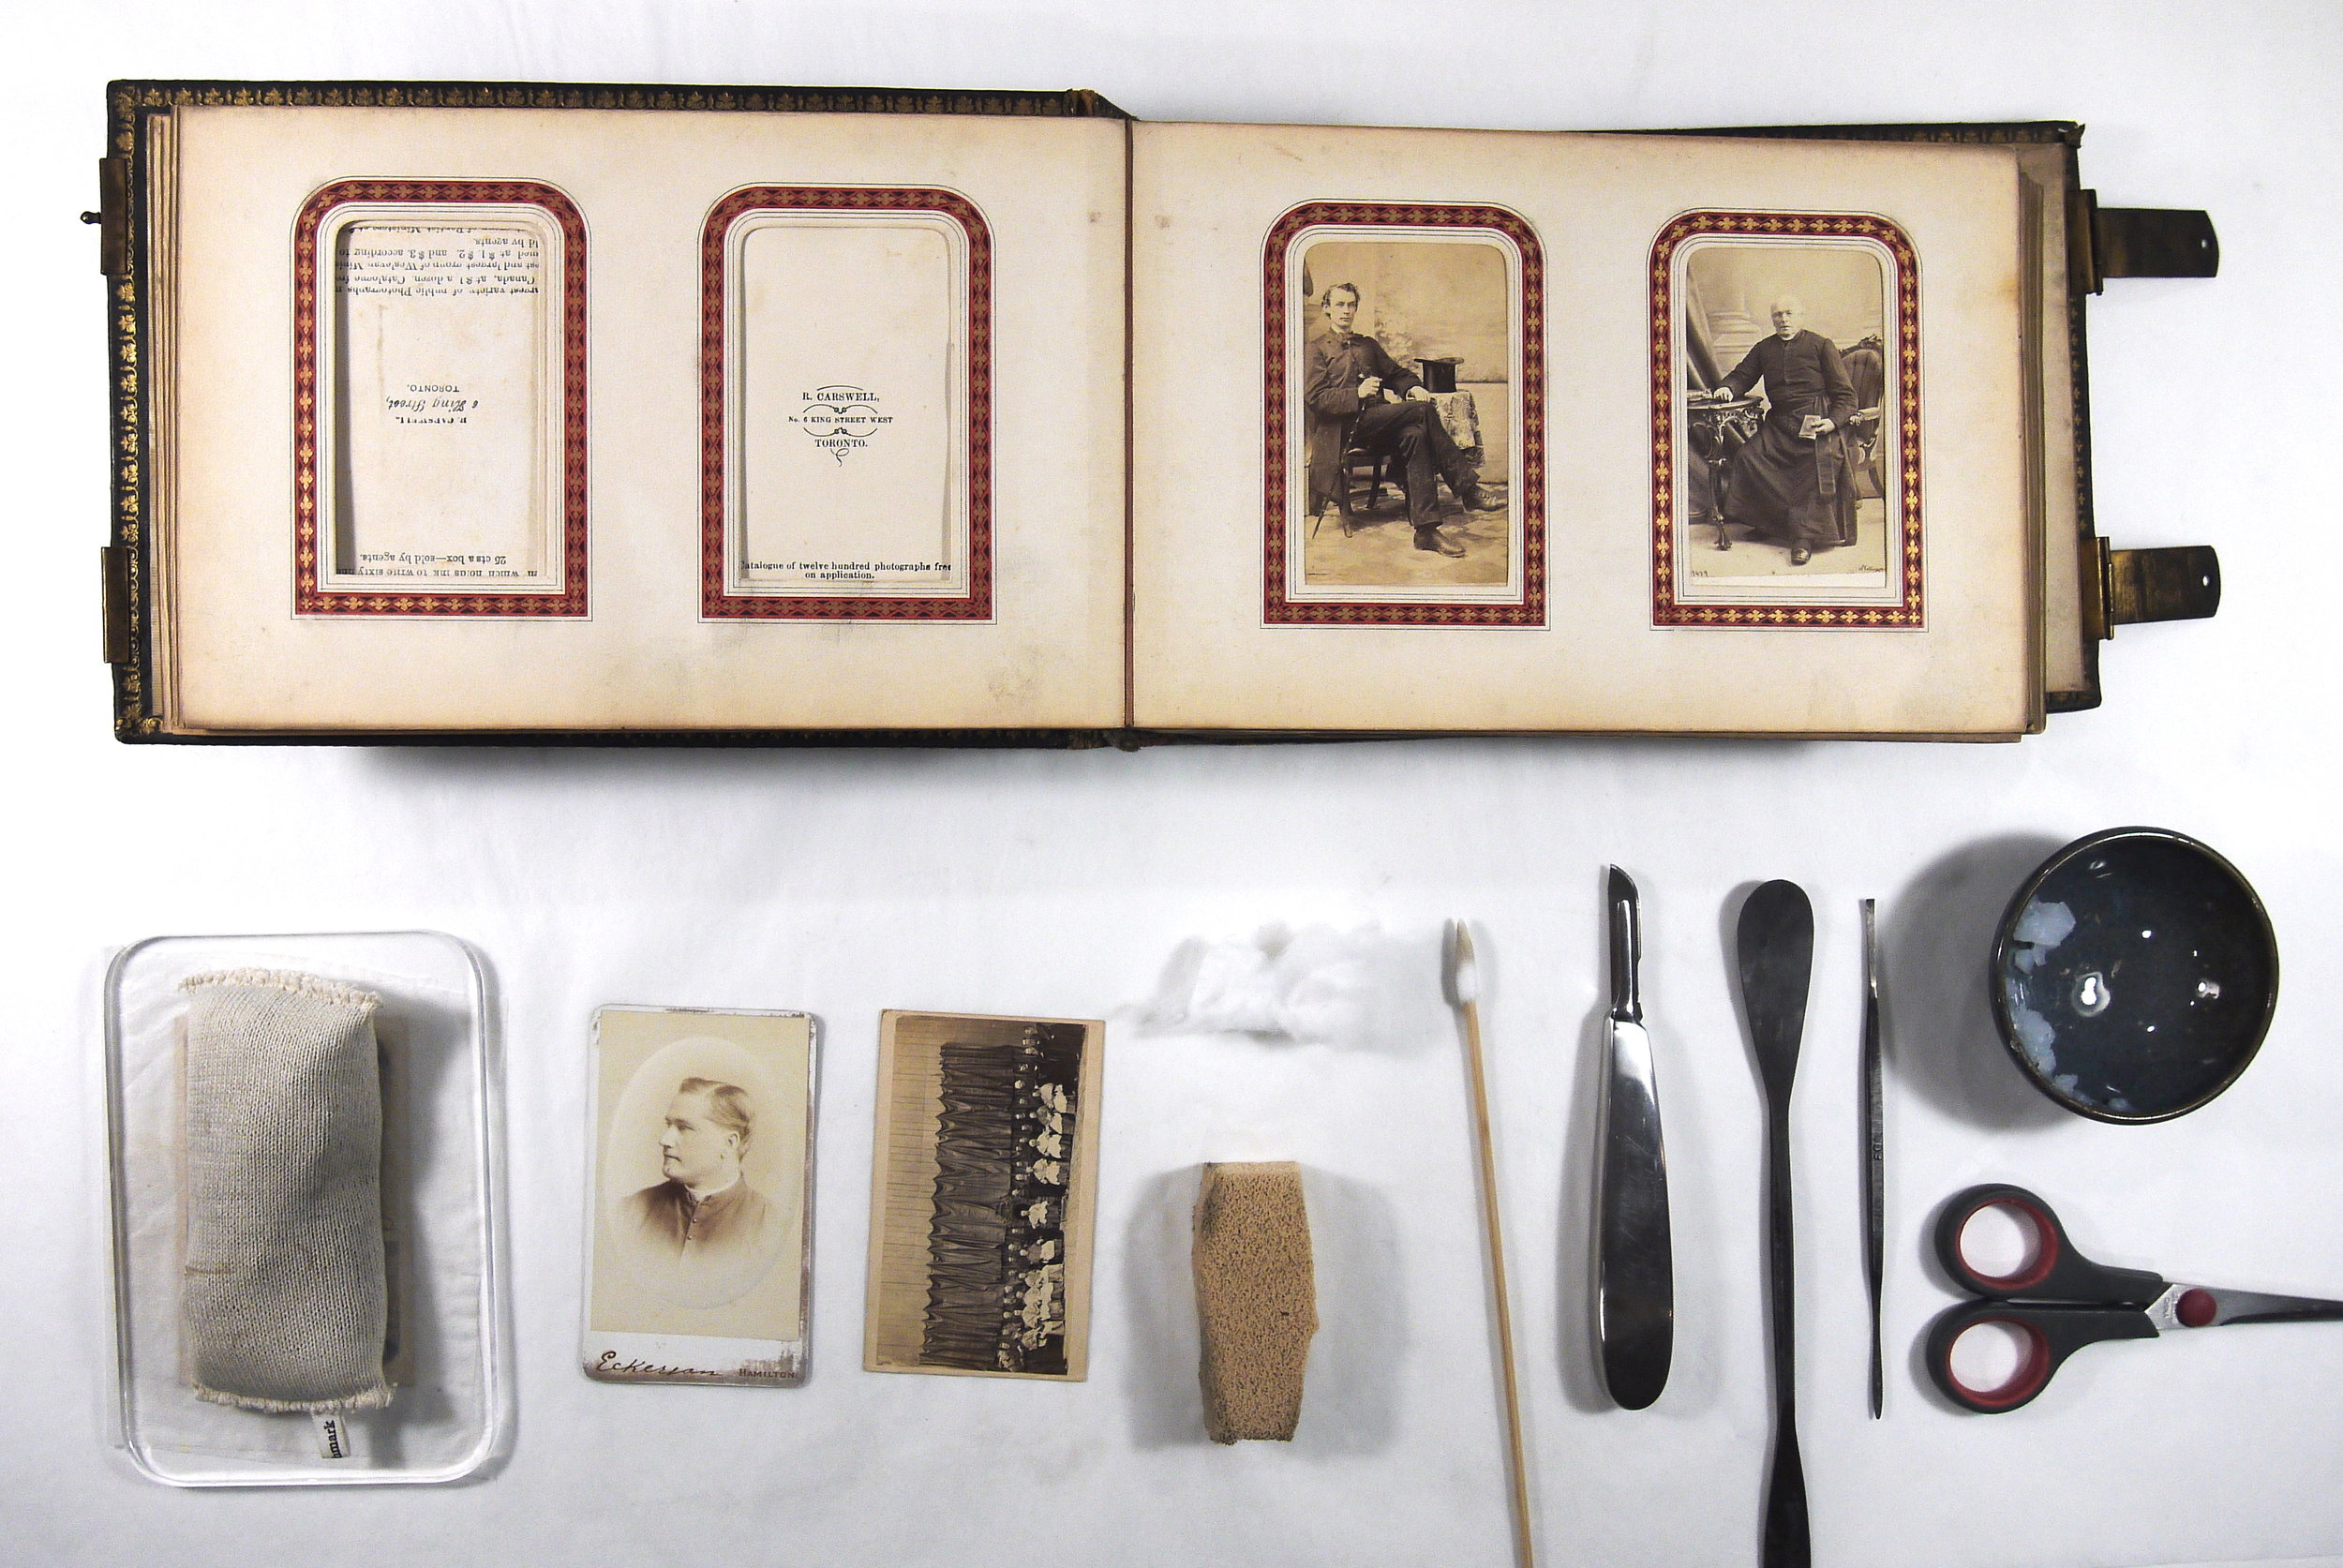 The Bishop Crinnon carte de visite photograph album, during conservation treatment.